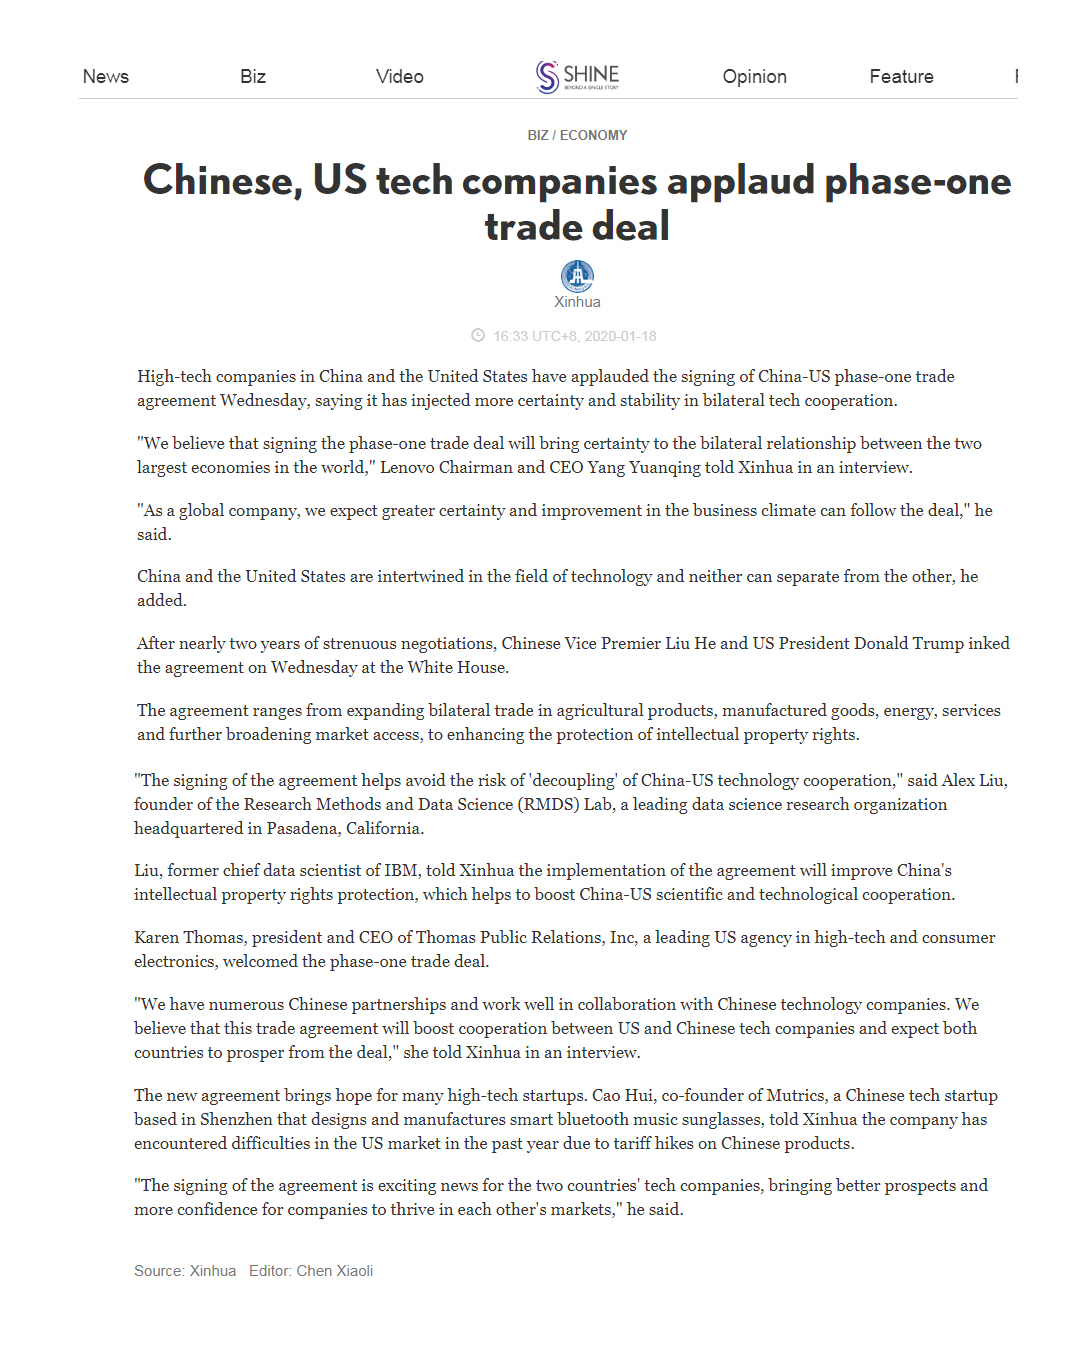 """New! Shanghai Daily/ Xinhua News Agency Article - Chinese, US tech companies applaud phase-one trade deal: """"Karen Thomas, president and CEO of Thomas Public Relations, Inc, a leading US agency in high-tech and consumer electronics, welcomed the phase-one trade deal. 'We have numerous Chinese partnerships and work well in collaboration with Chinese technology companies. We believe that this trade agreement will boost cooperation between US and Chinese tech companies and expect both countries to prosper from the deal,' she told Xinhua in an interview."""" https://www.shine.cn/biz/economy/2001180084/"""